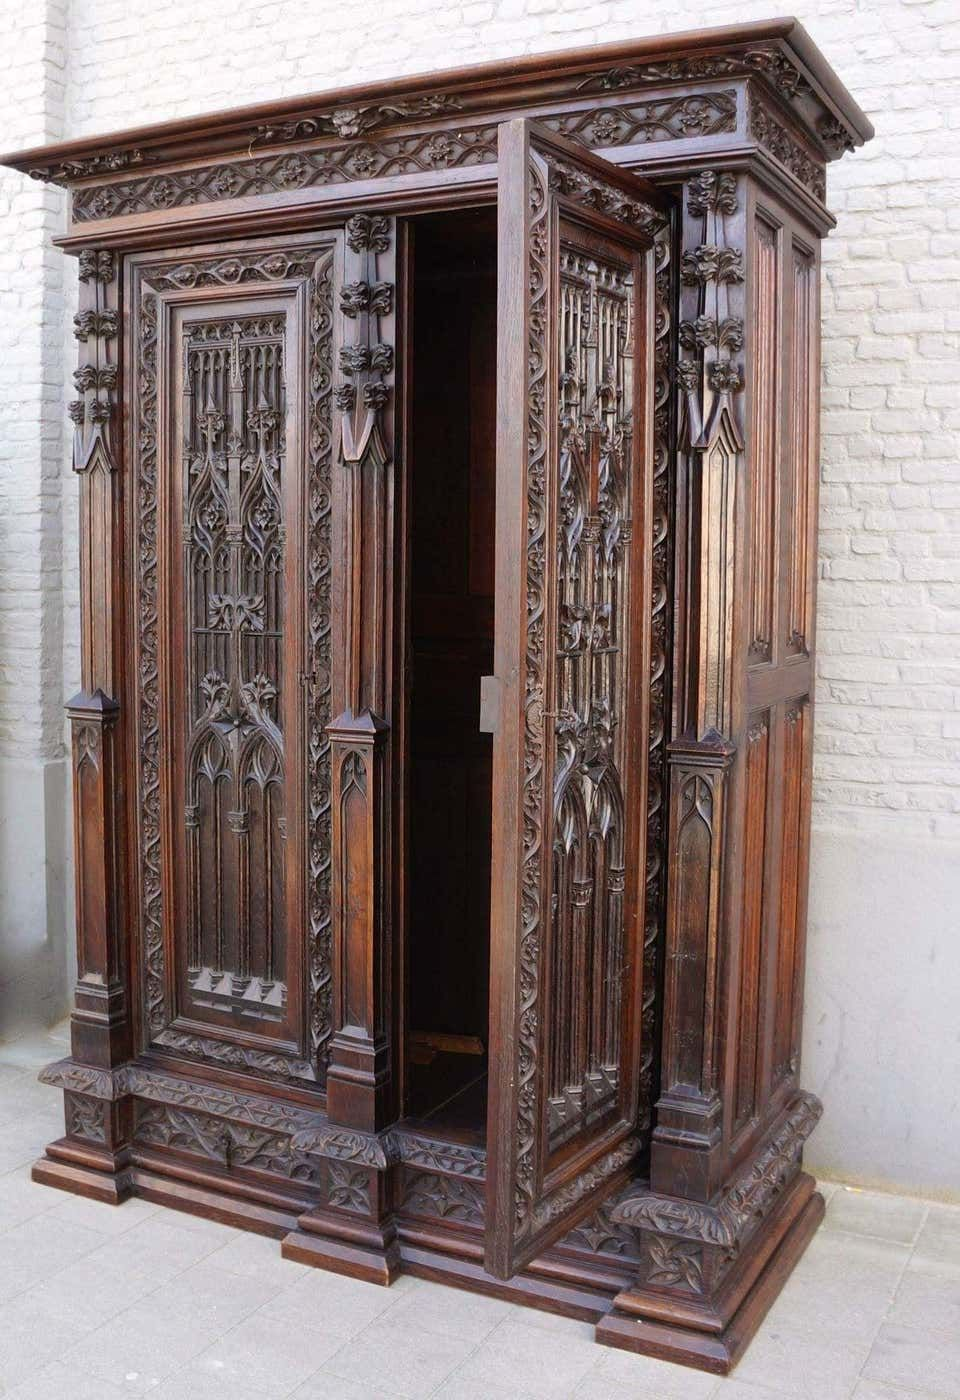 For Sale On 1stdibs A Magnificent Gothic Revival Oak Armoire In The Spirit Of Violett Le Duc Fran Gothic Bedroom Furniture Gothic Furniture Ornate Furniture